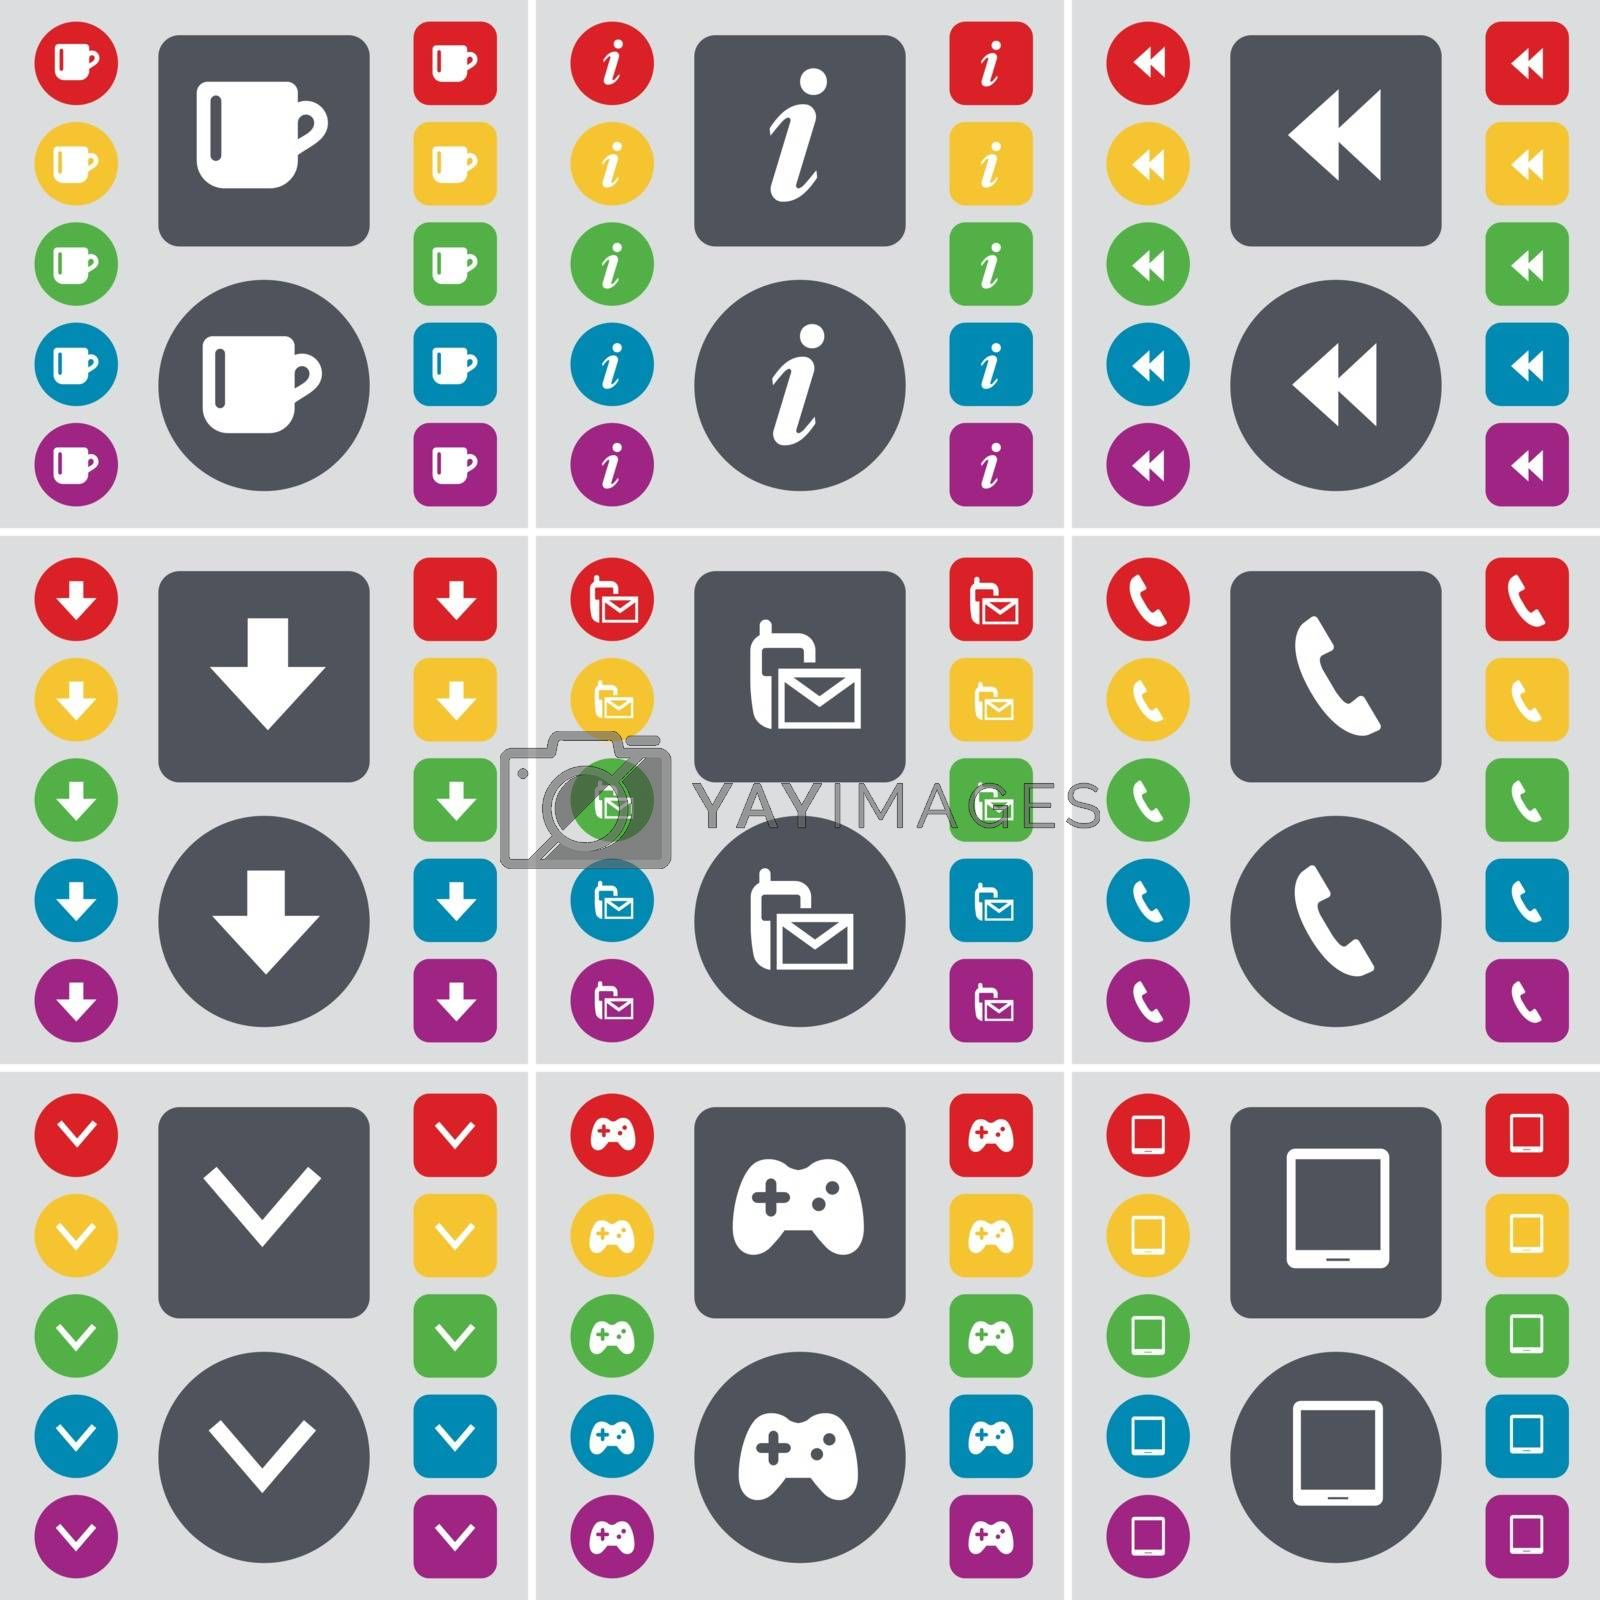 Royalty free image of Cup, Information, Rewind, Arrow down, SMS, Receiver, Arrow down, Gamepad, Tablet PC icon symbol. A large set of flat, colored buttons for your design. Vector by serhii_lohvyniuk